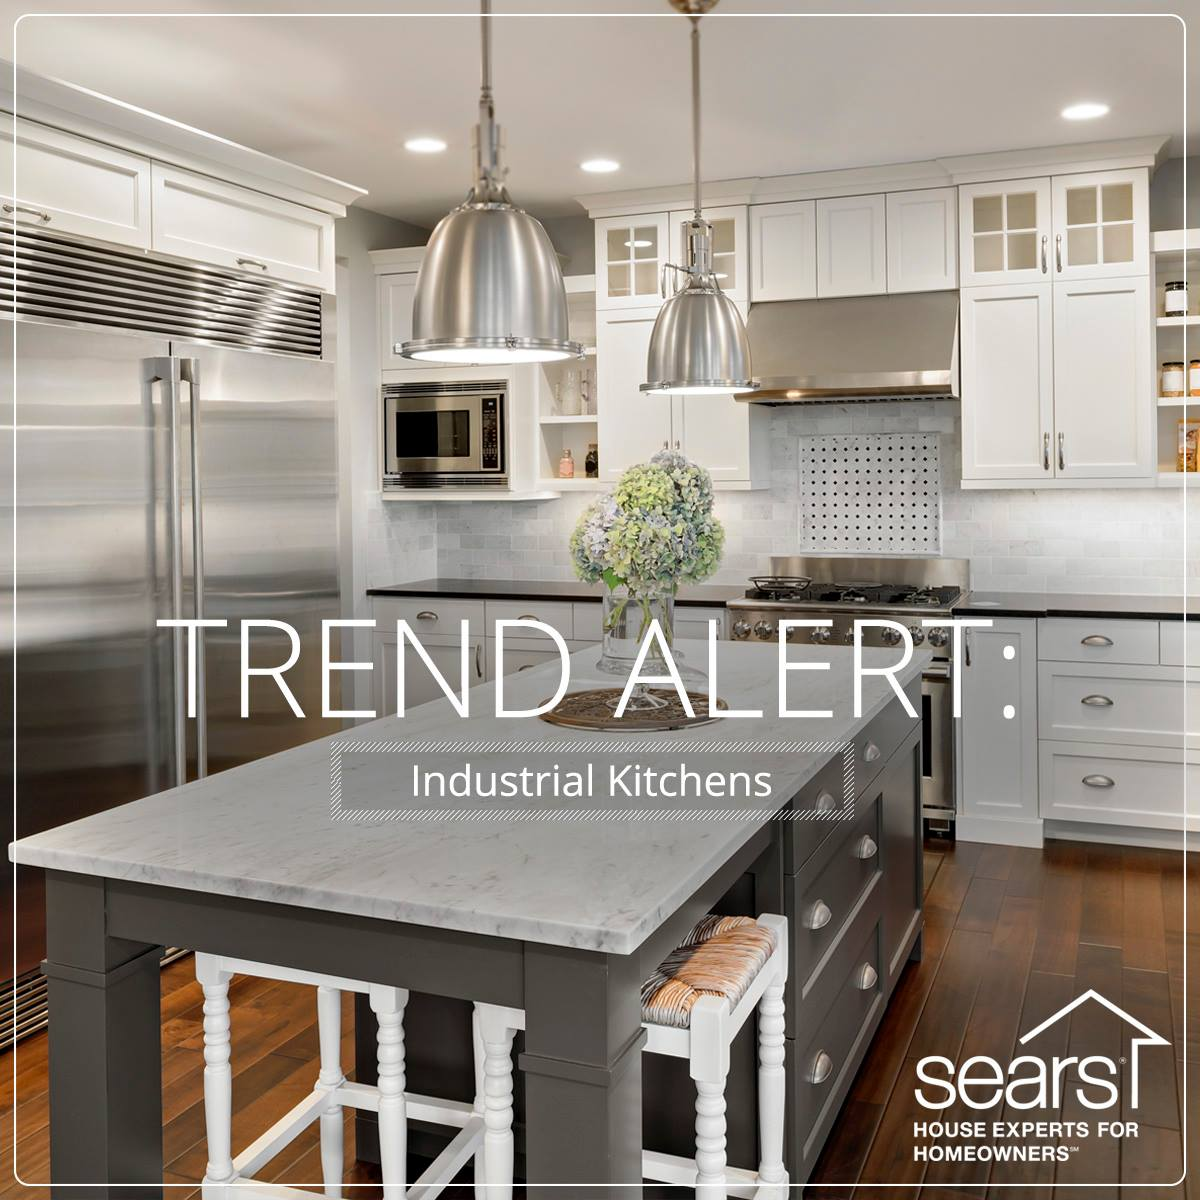 sears kitchen ways to conserve water in the build your dream on a budget with home services trend alert industrial kitchens